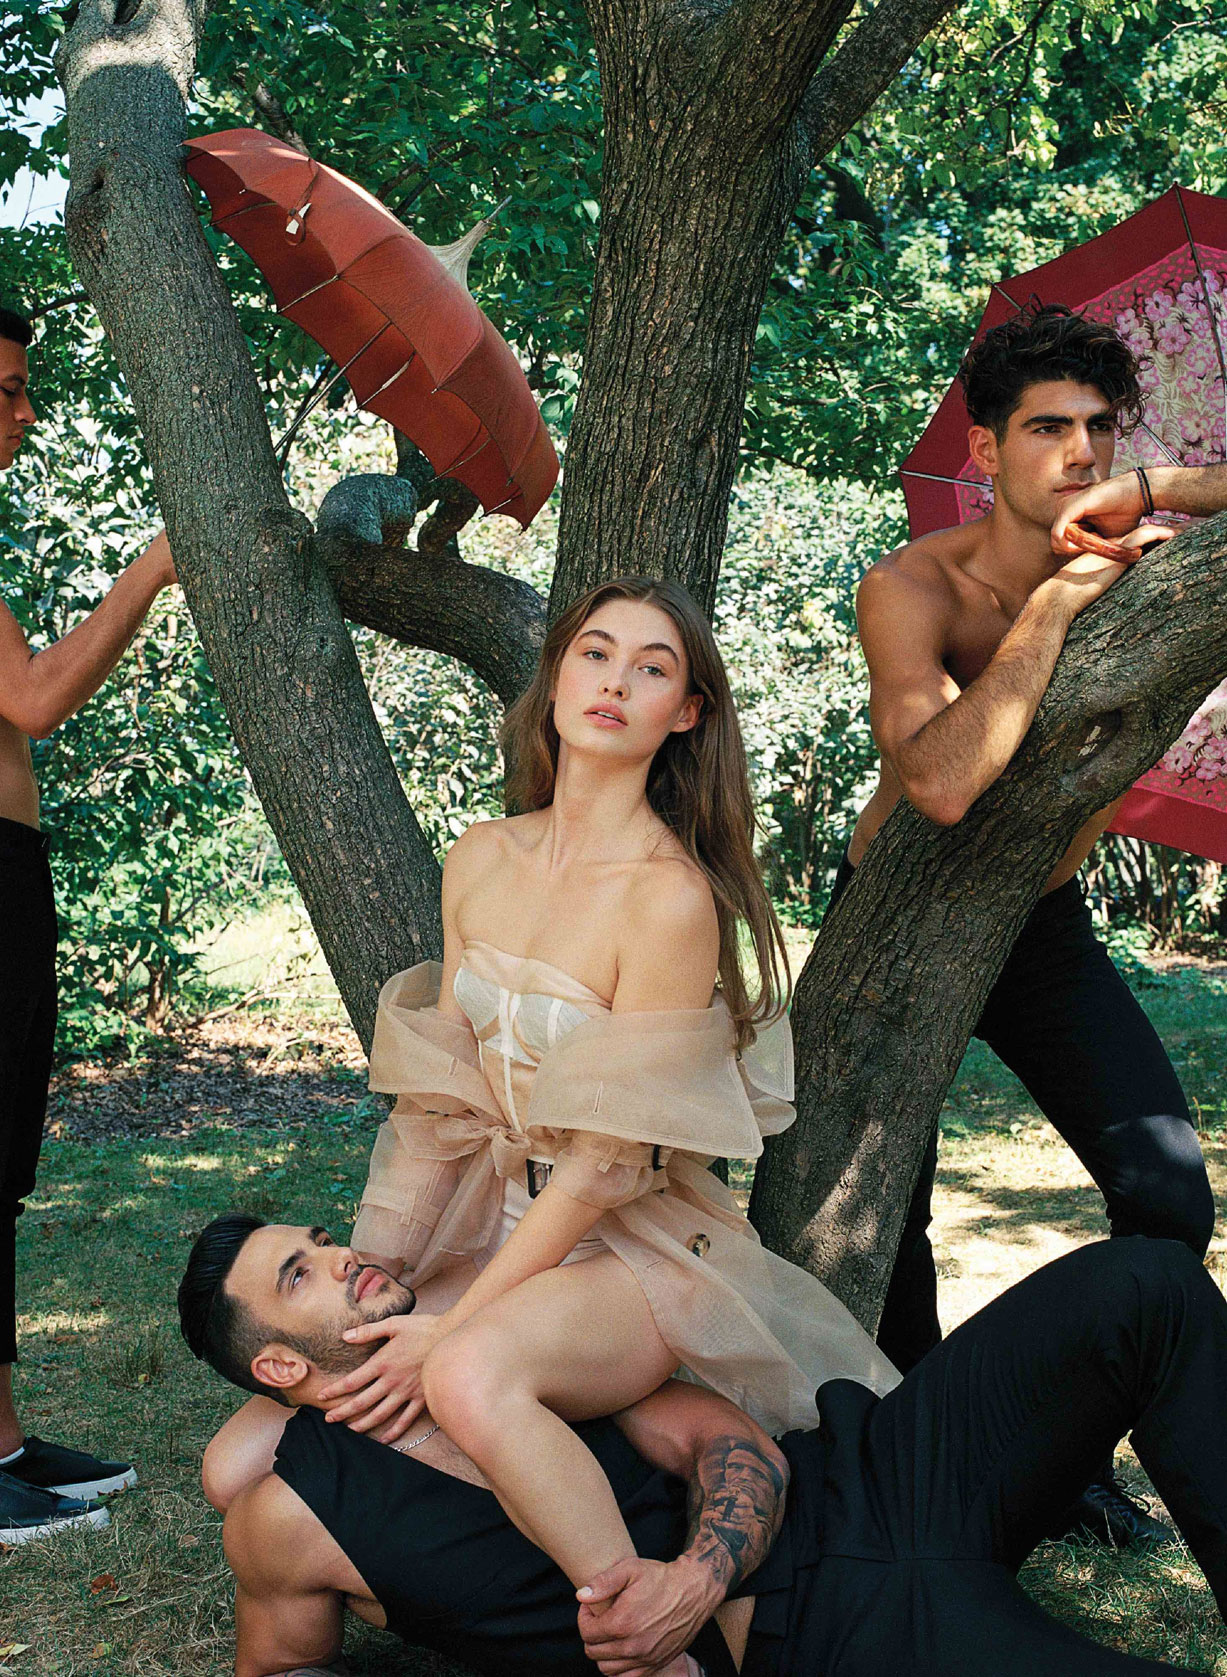 На природе с Грейс Элизабет / Grace Elizabeth by Bruce Weber - V Magazine no.110 winter 2017 / with Adil Haddaoui, Teddy Spanos, Stevan Stevanovic / No Other Name